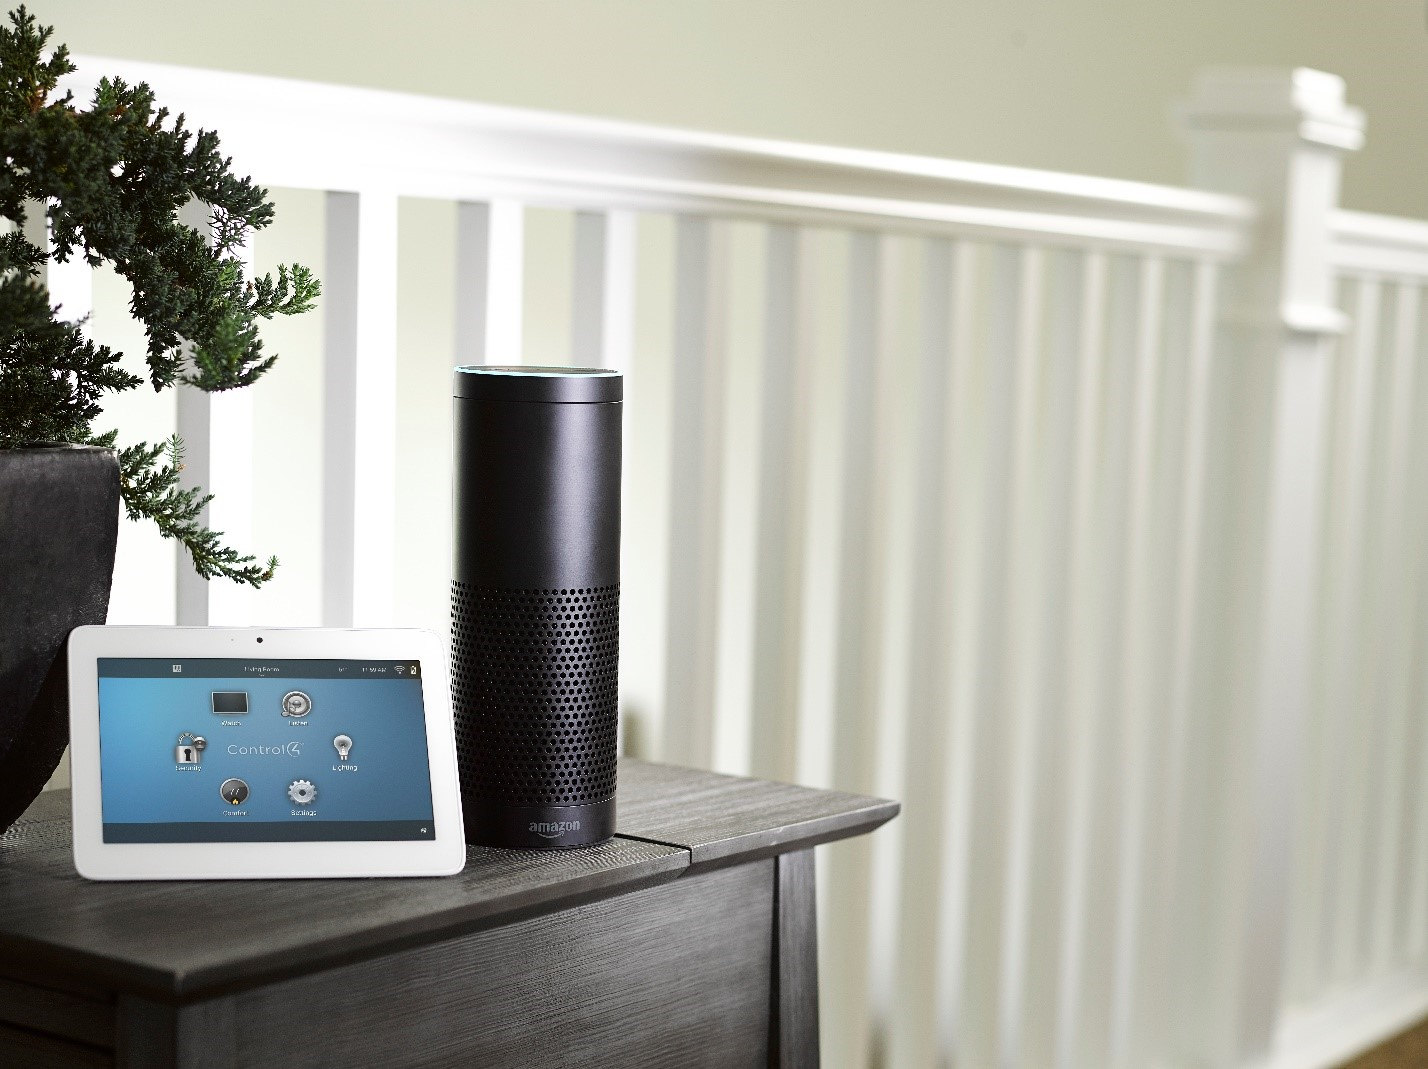 Enjoy Hands-free Automation with Amazon's Alexa